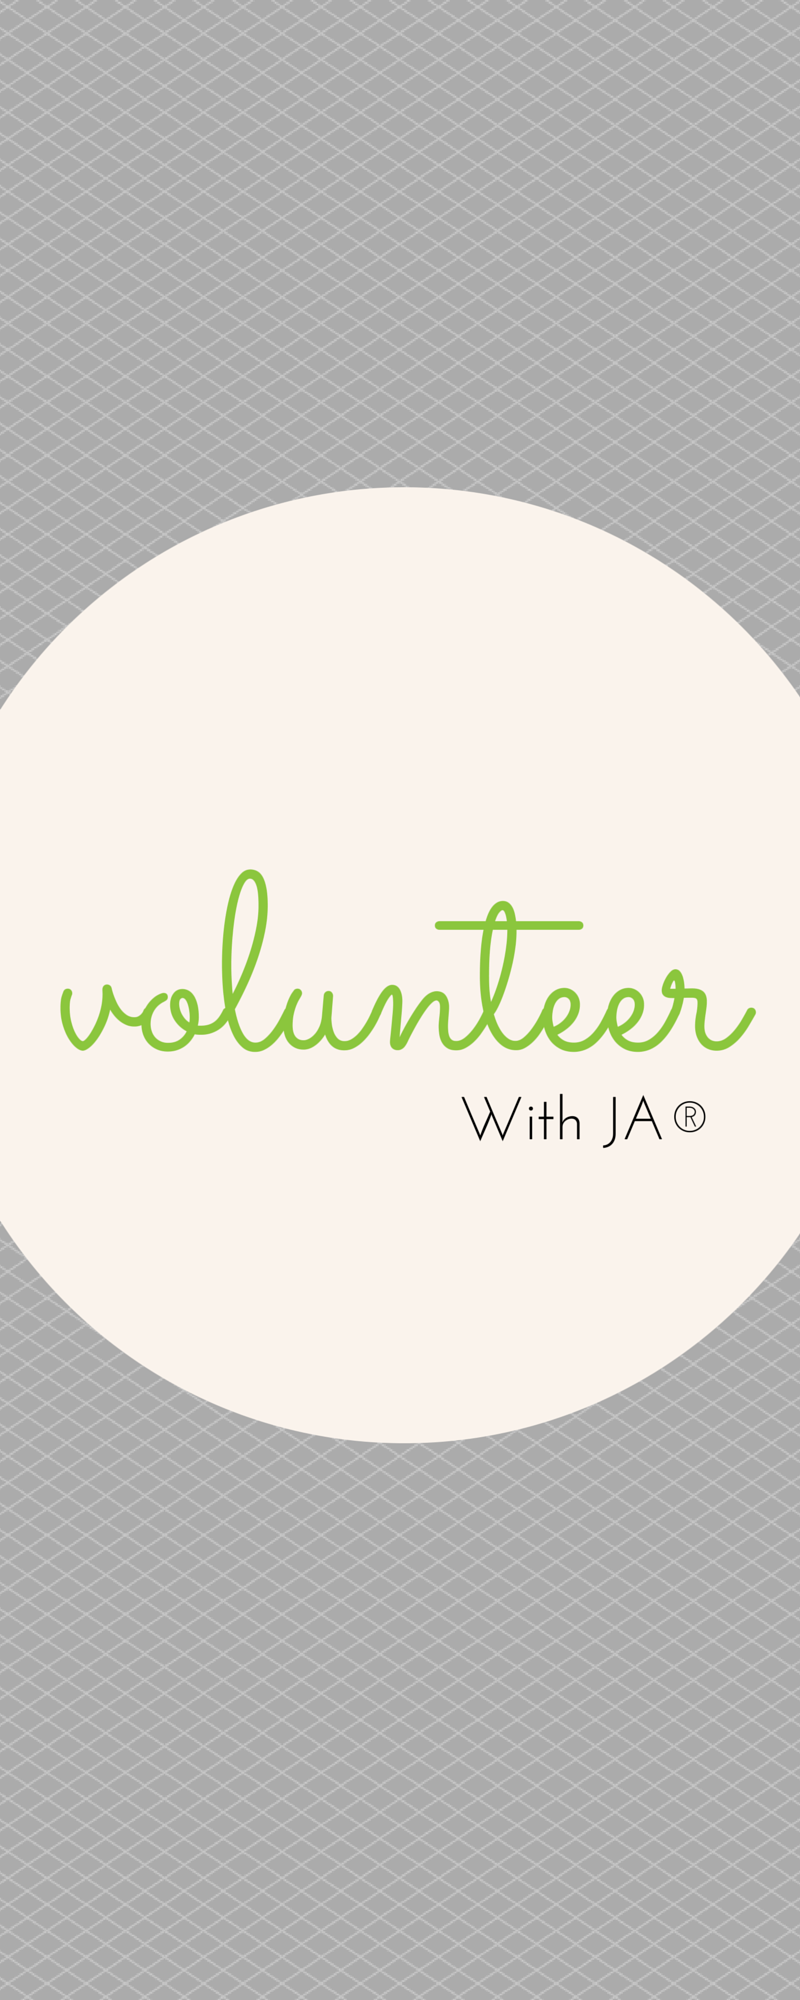 We offer flexible training and volunteer opportunities for groups of all sizes in the classroom or at JA Finance Park®.